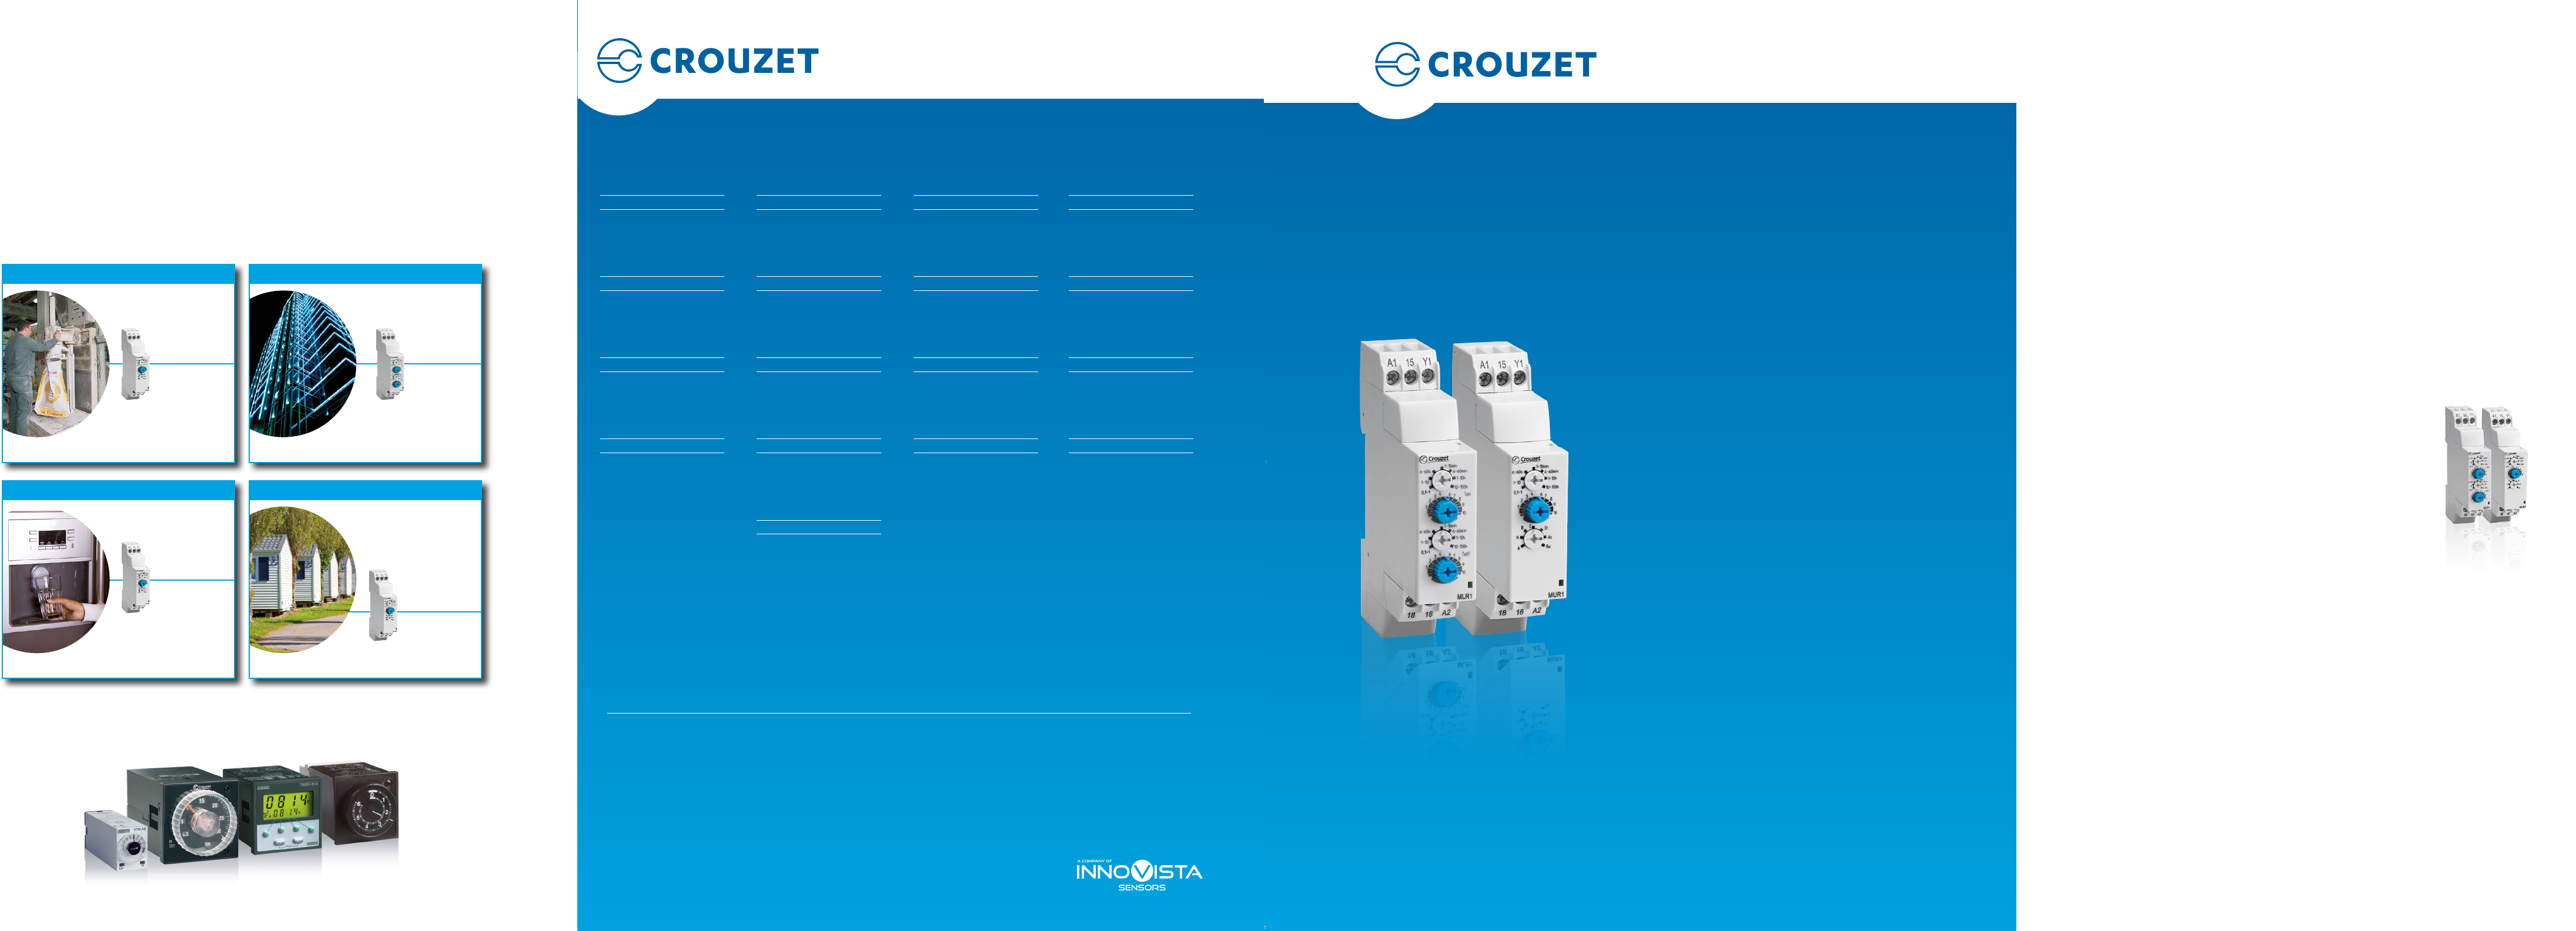 2 Available NEW! PL2R1 Crouzet Timer Relay